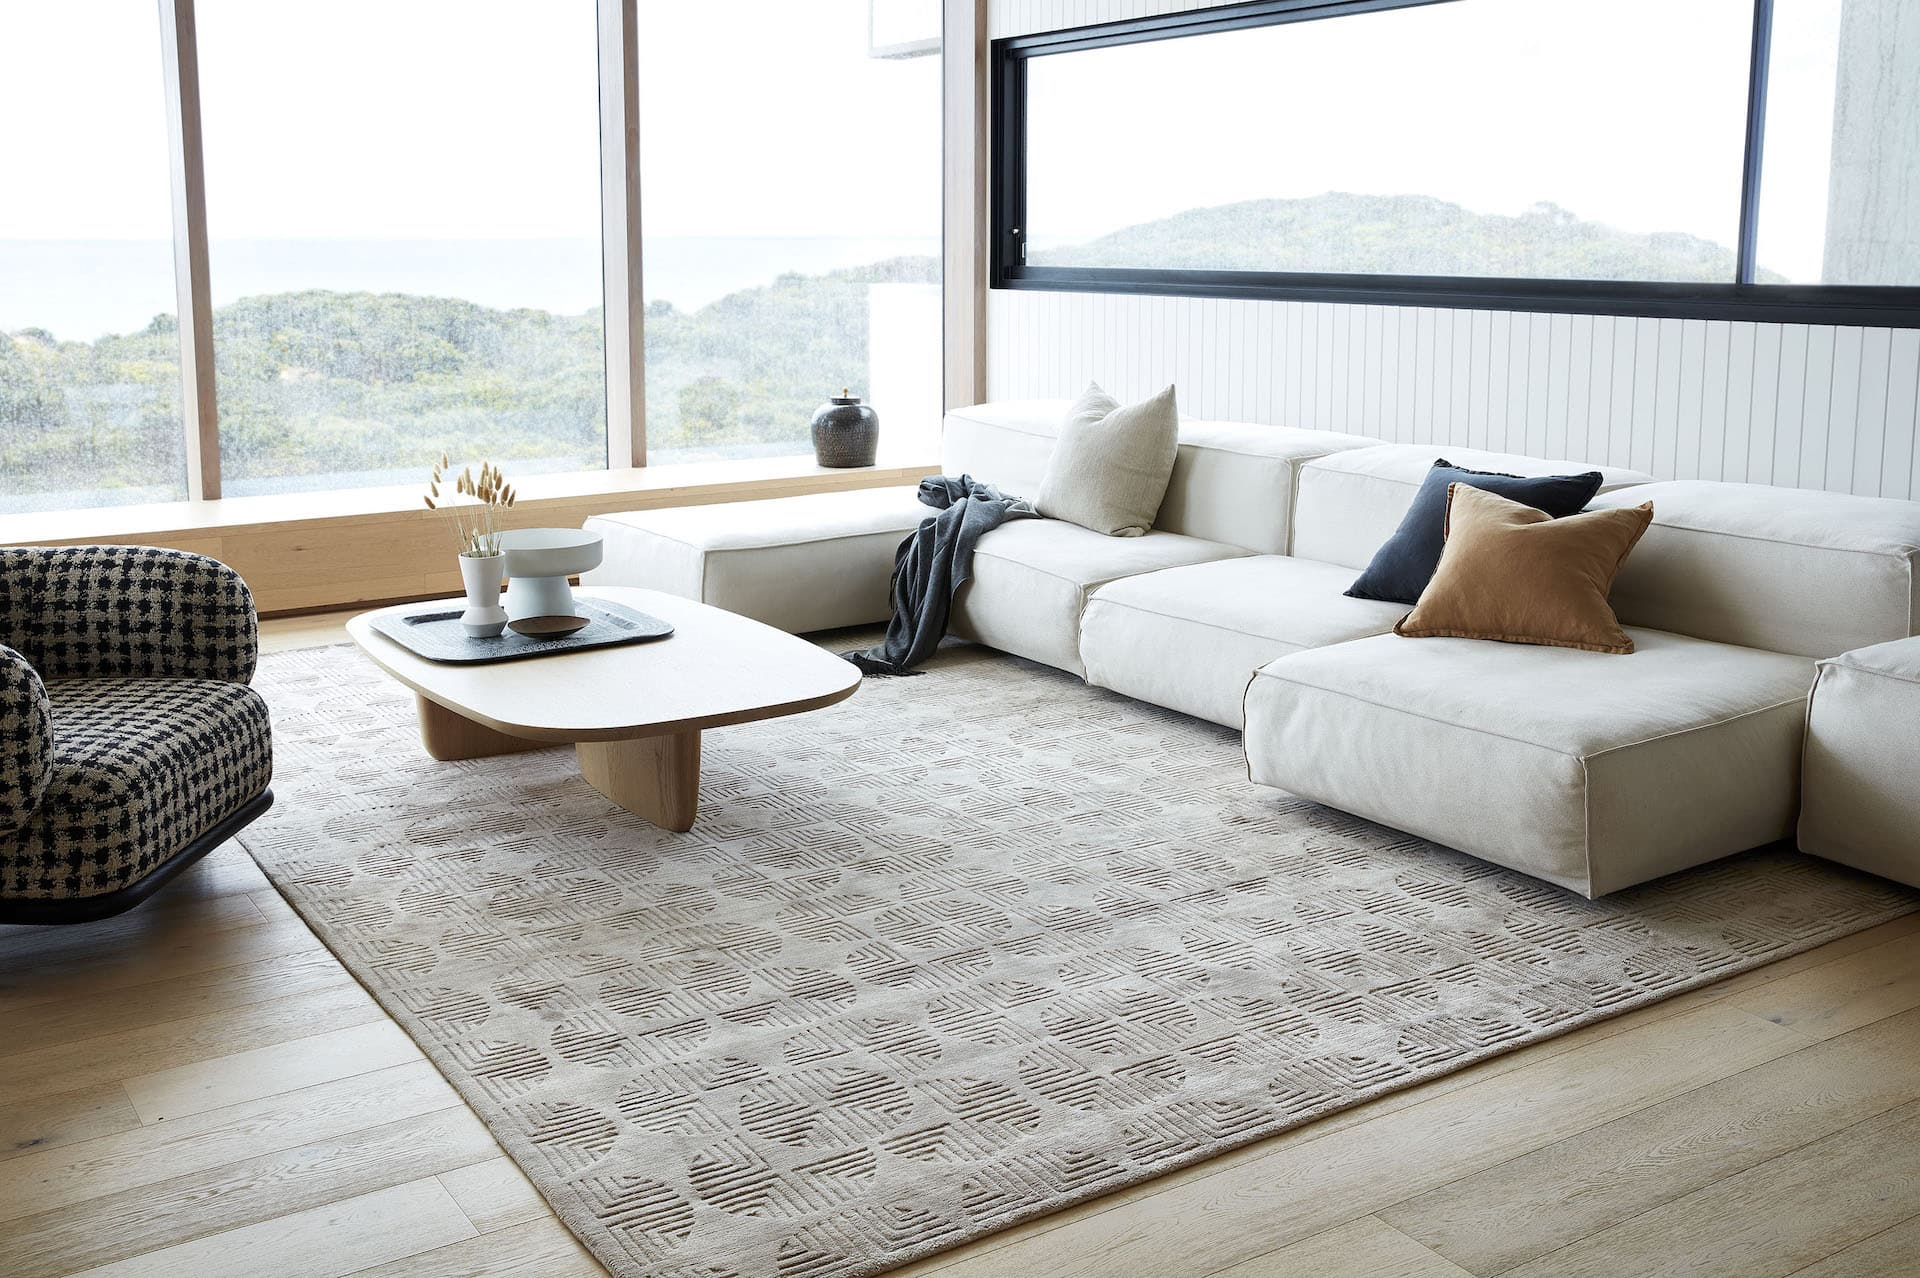 tribe home neutral living room with subtle patterned rug and large block sofa